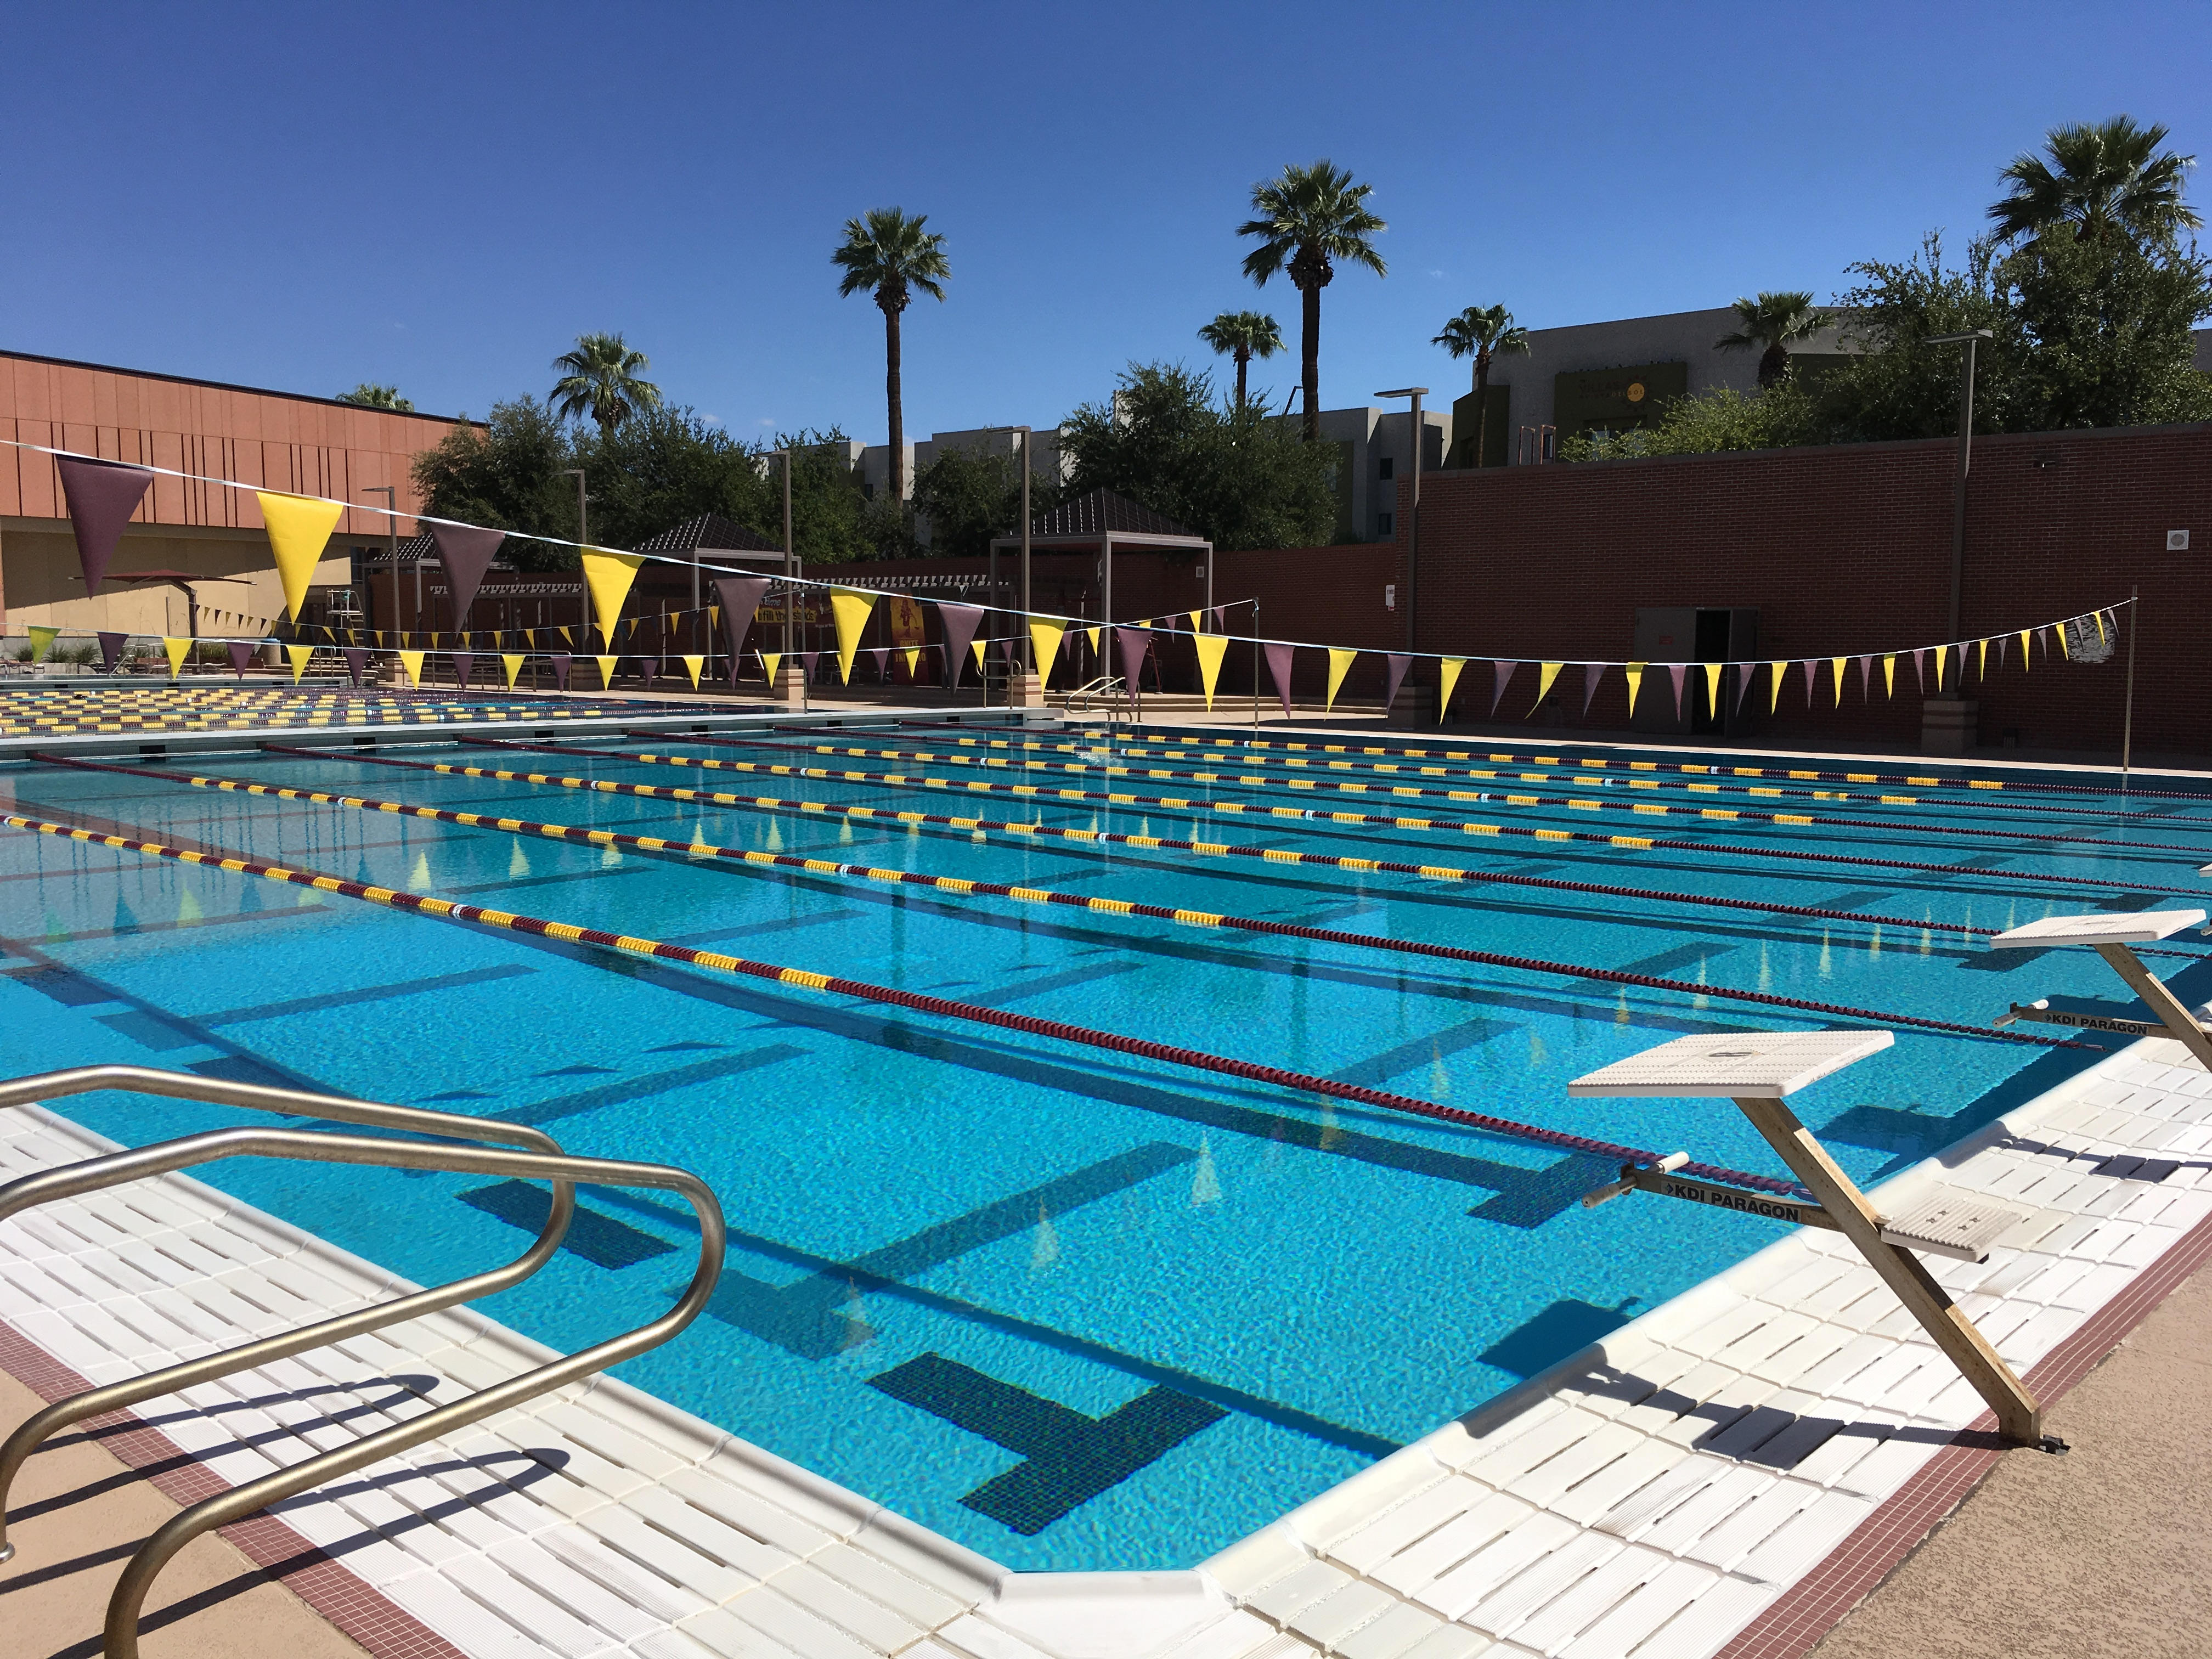 0321 - ASU Sun Devil Fitness Center - West Pool